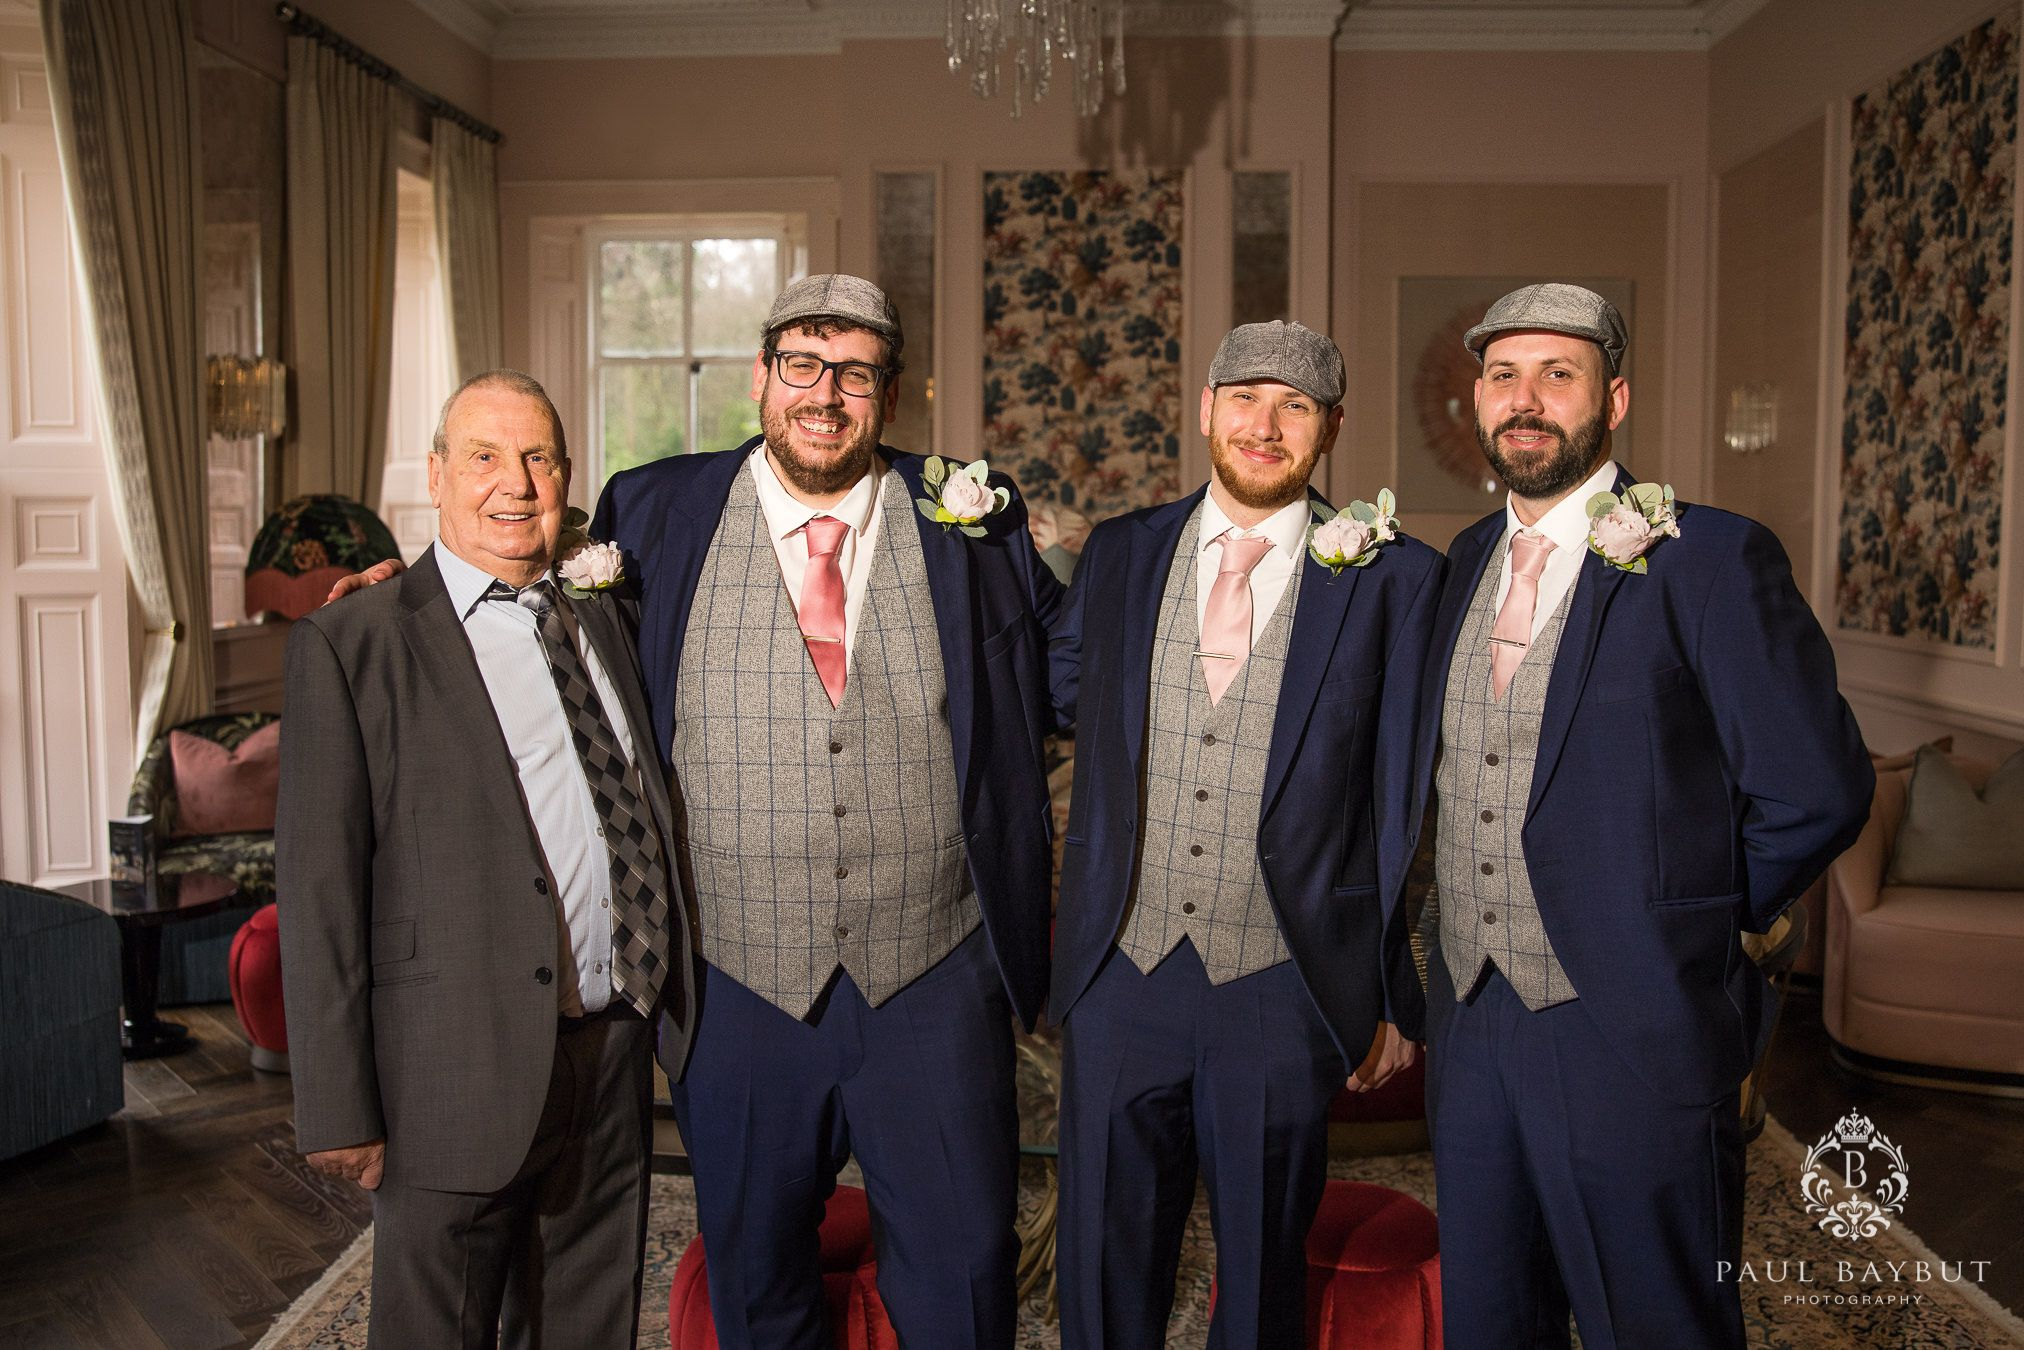 All the men standing for wedding photos at Mottram Hall Winter wedding